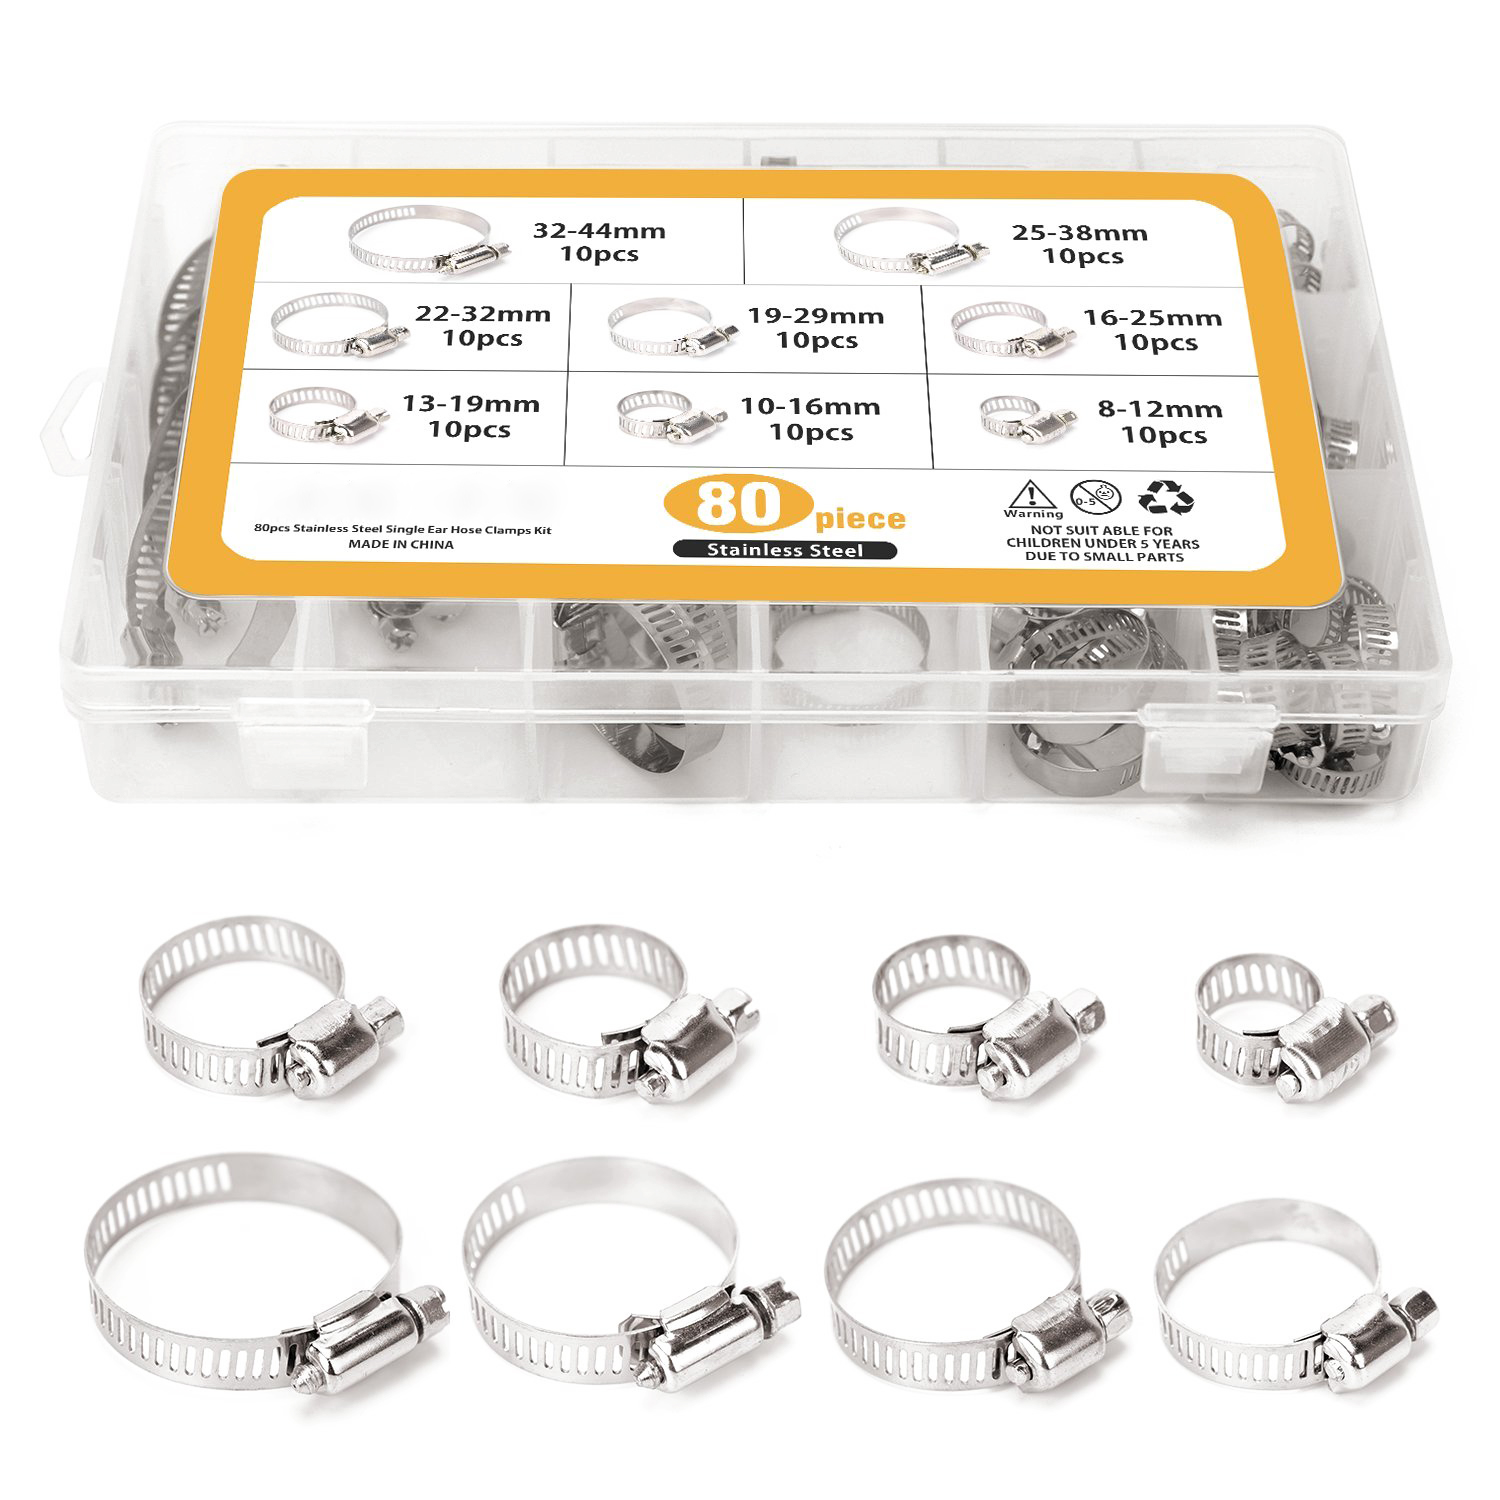 80 Pieces Adjustable 5/16-1-23/32 inch Range Worm Gear Hose Clamps Assortment Kit, 8 Size,One Dual-purpose Screwdriver Include new 34pcs carbon steel worm gear adjustable hose clamps assortment set 16mm 32mm